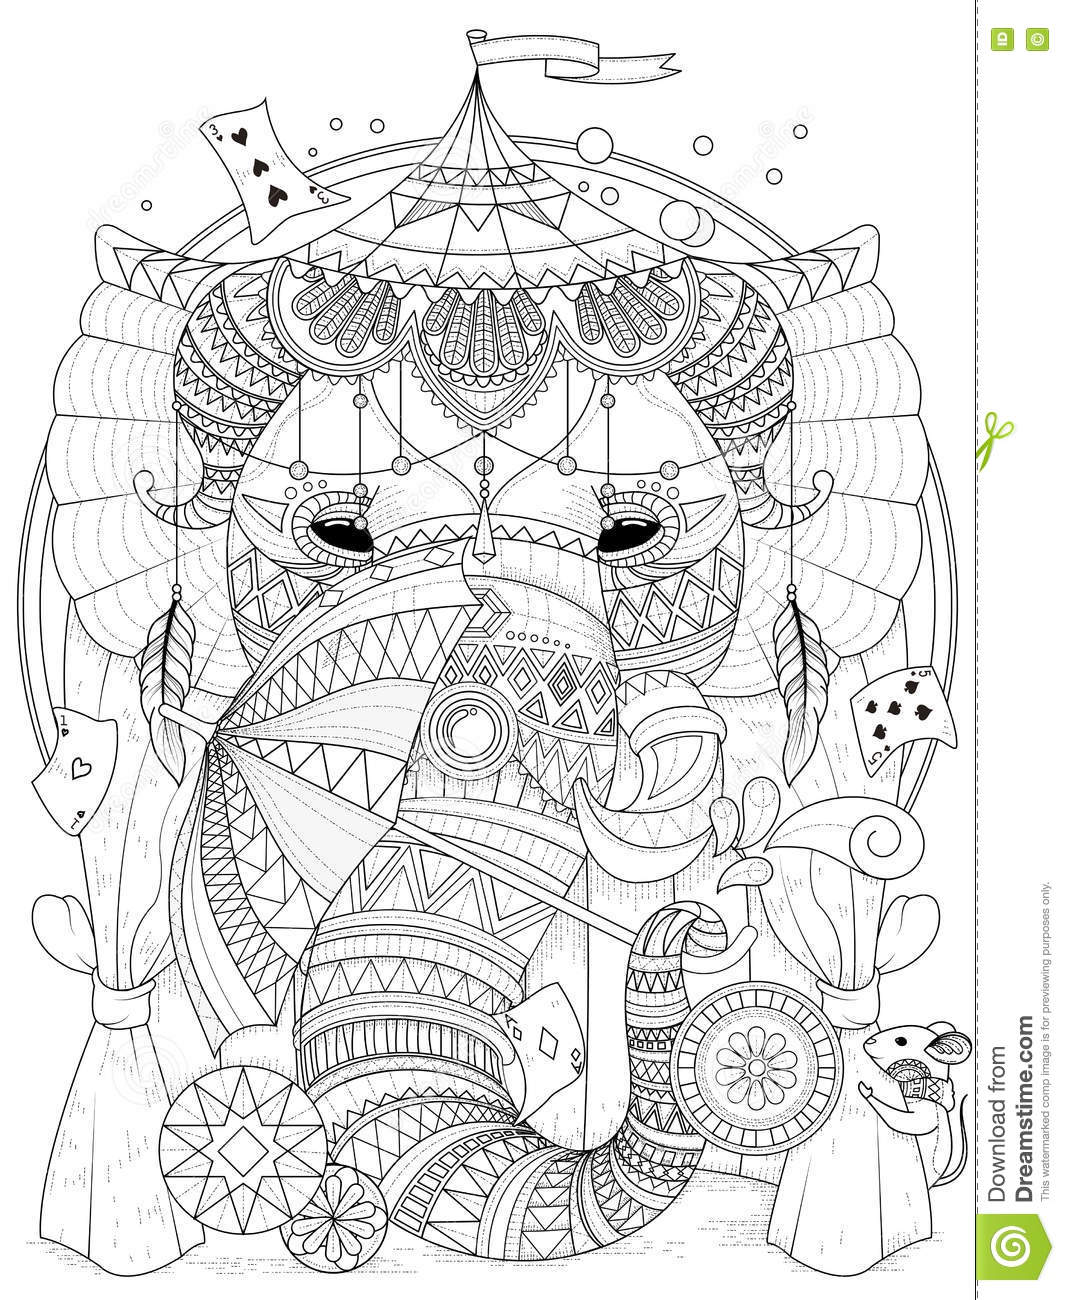 Elephant adult coloring page stock illustration for Clown coloring pages for adults